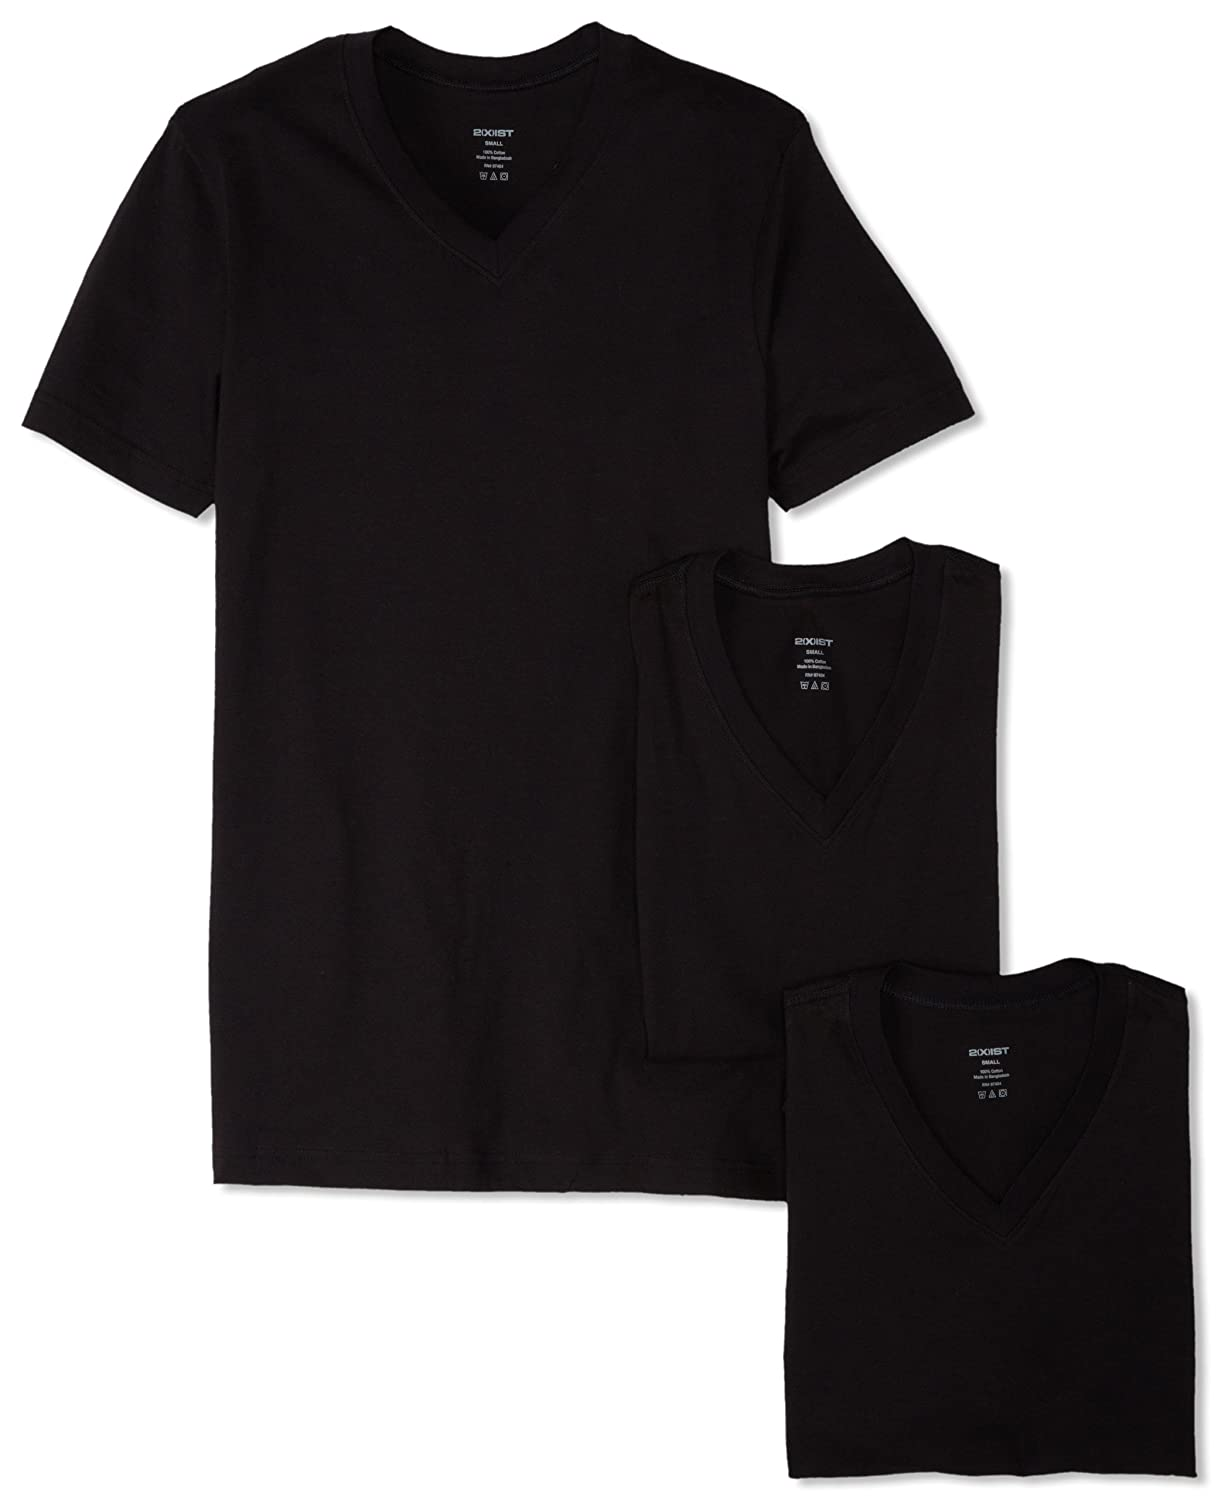 Black t shirt white collar - Black T Shirt White Collar 45